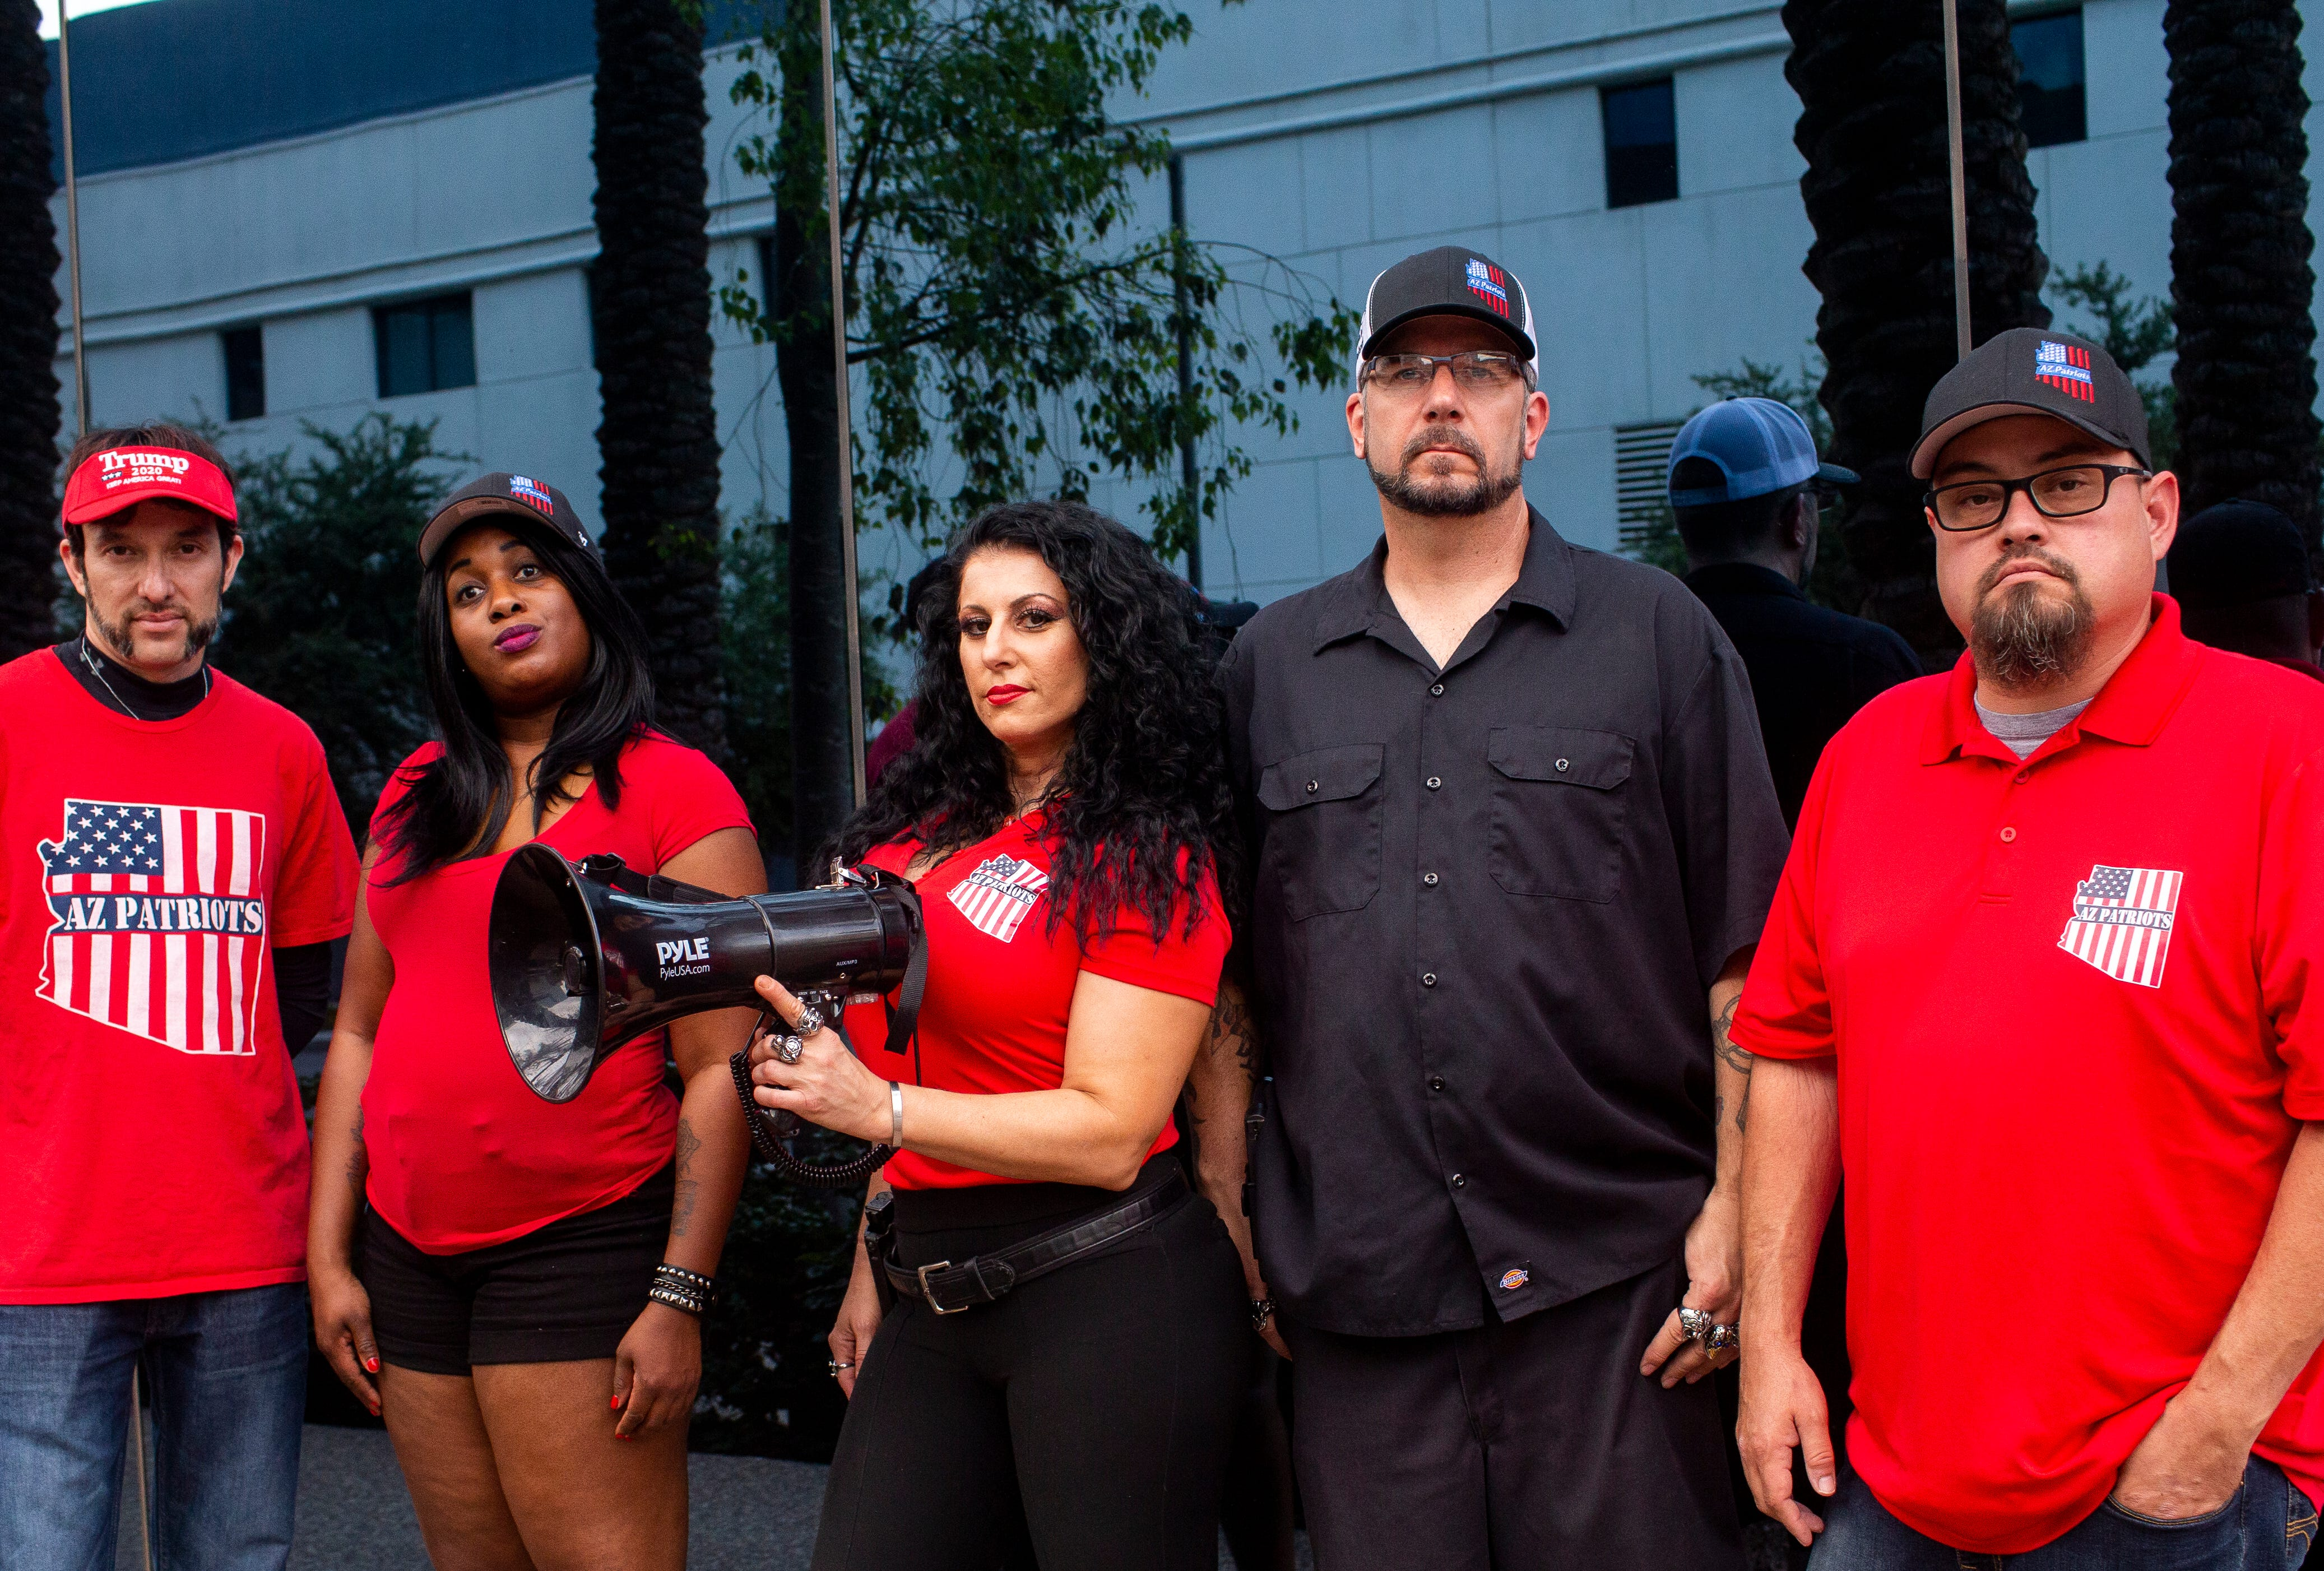 From left to right: AZ Patriots members Eduardo Jaime, Hope Coleman, Jennifer Harrison, Michael Pavlock and Jeremy Bronaugh pose for a portrait in front of The Arizona Republic in Phoenix on June. 24, 2020.